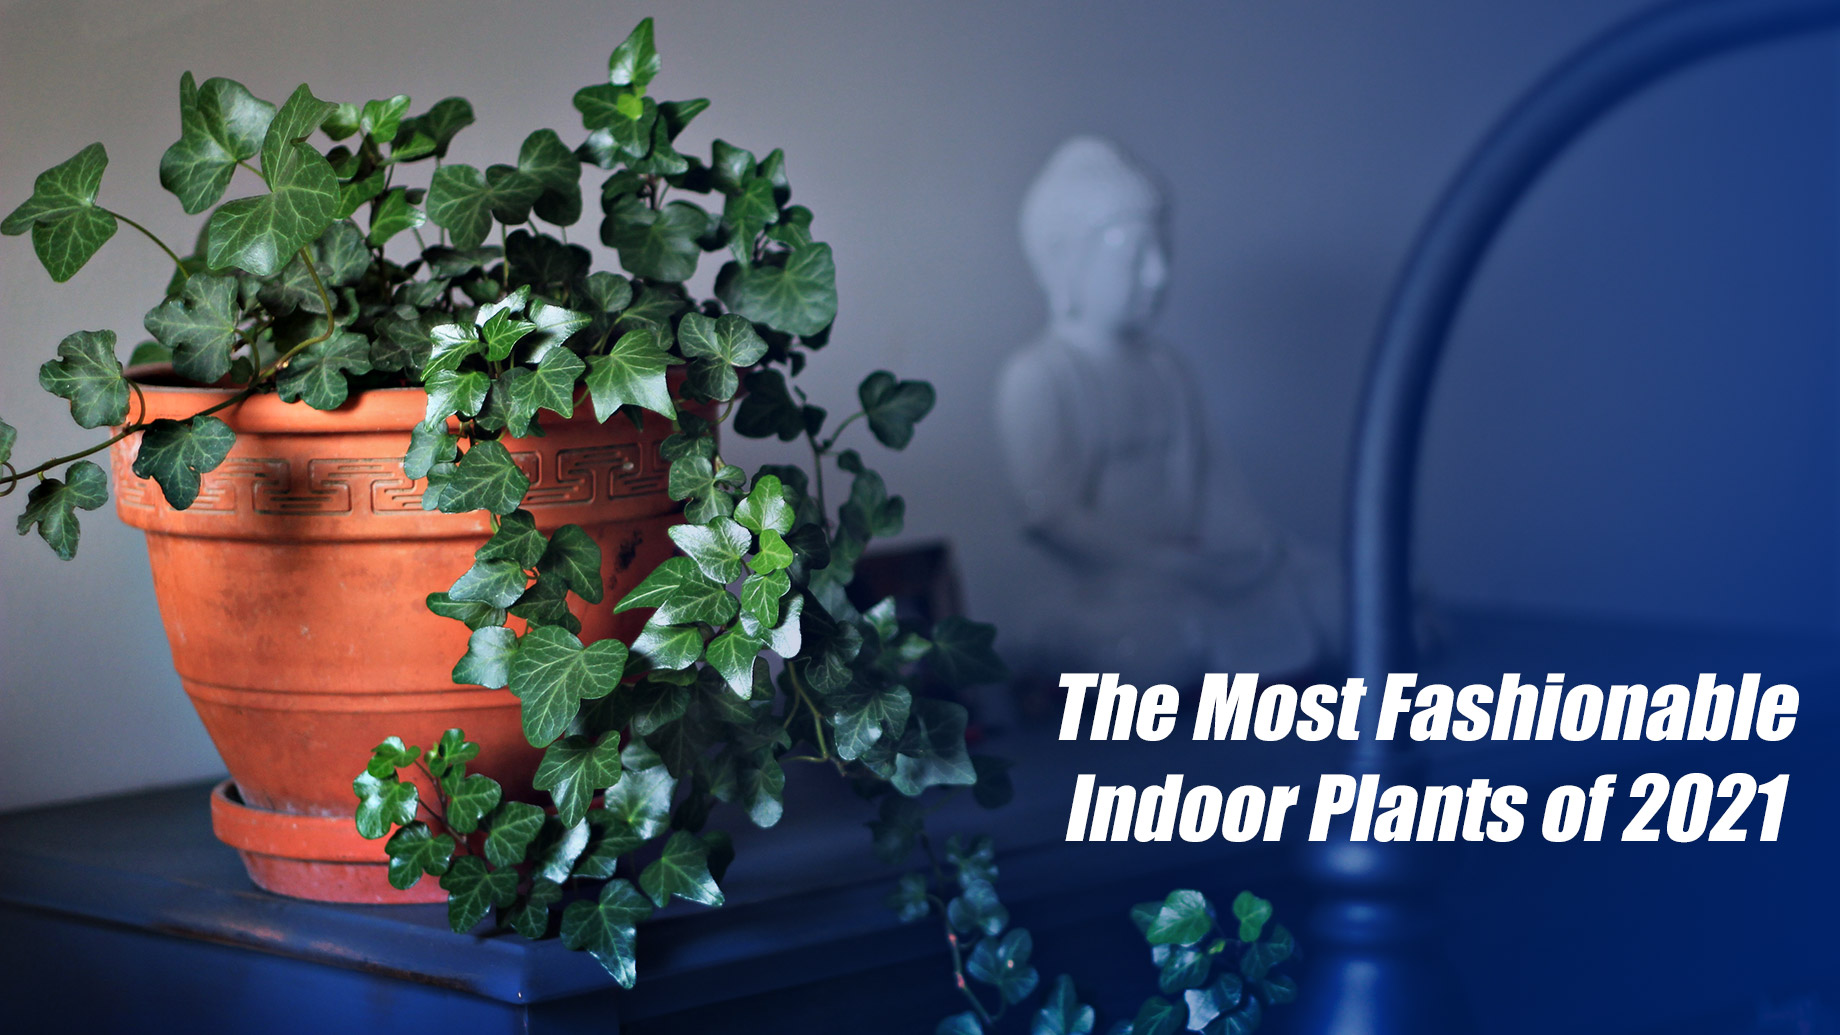 The Most Fashionable Indoor Plants of 2021